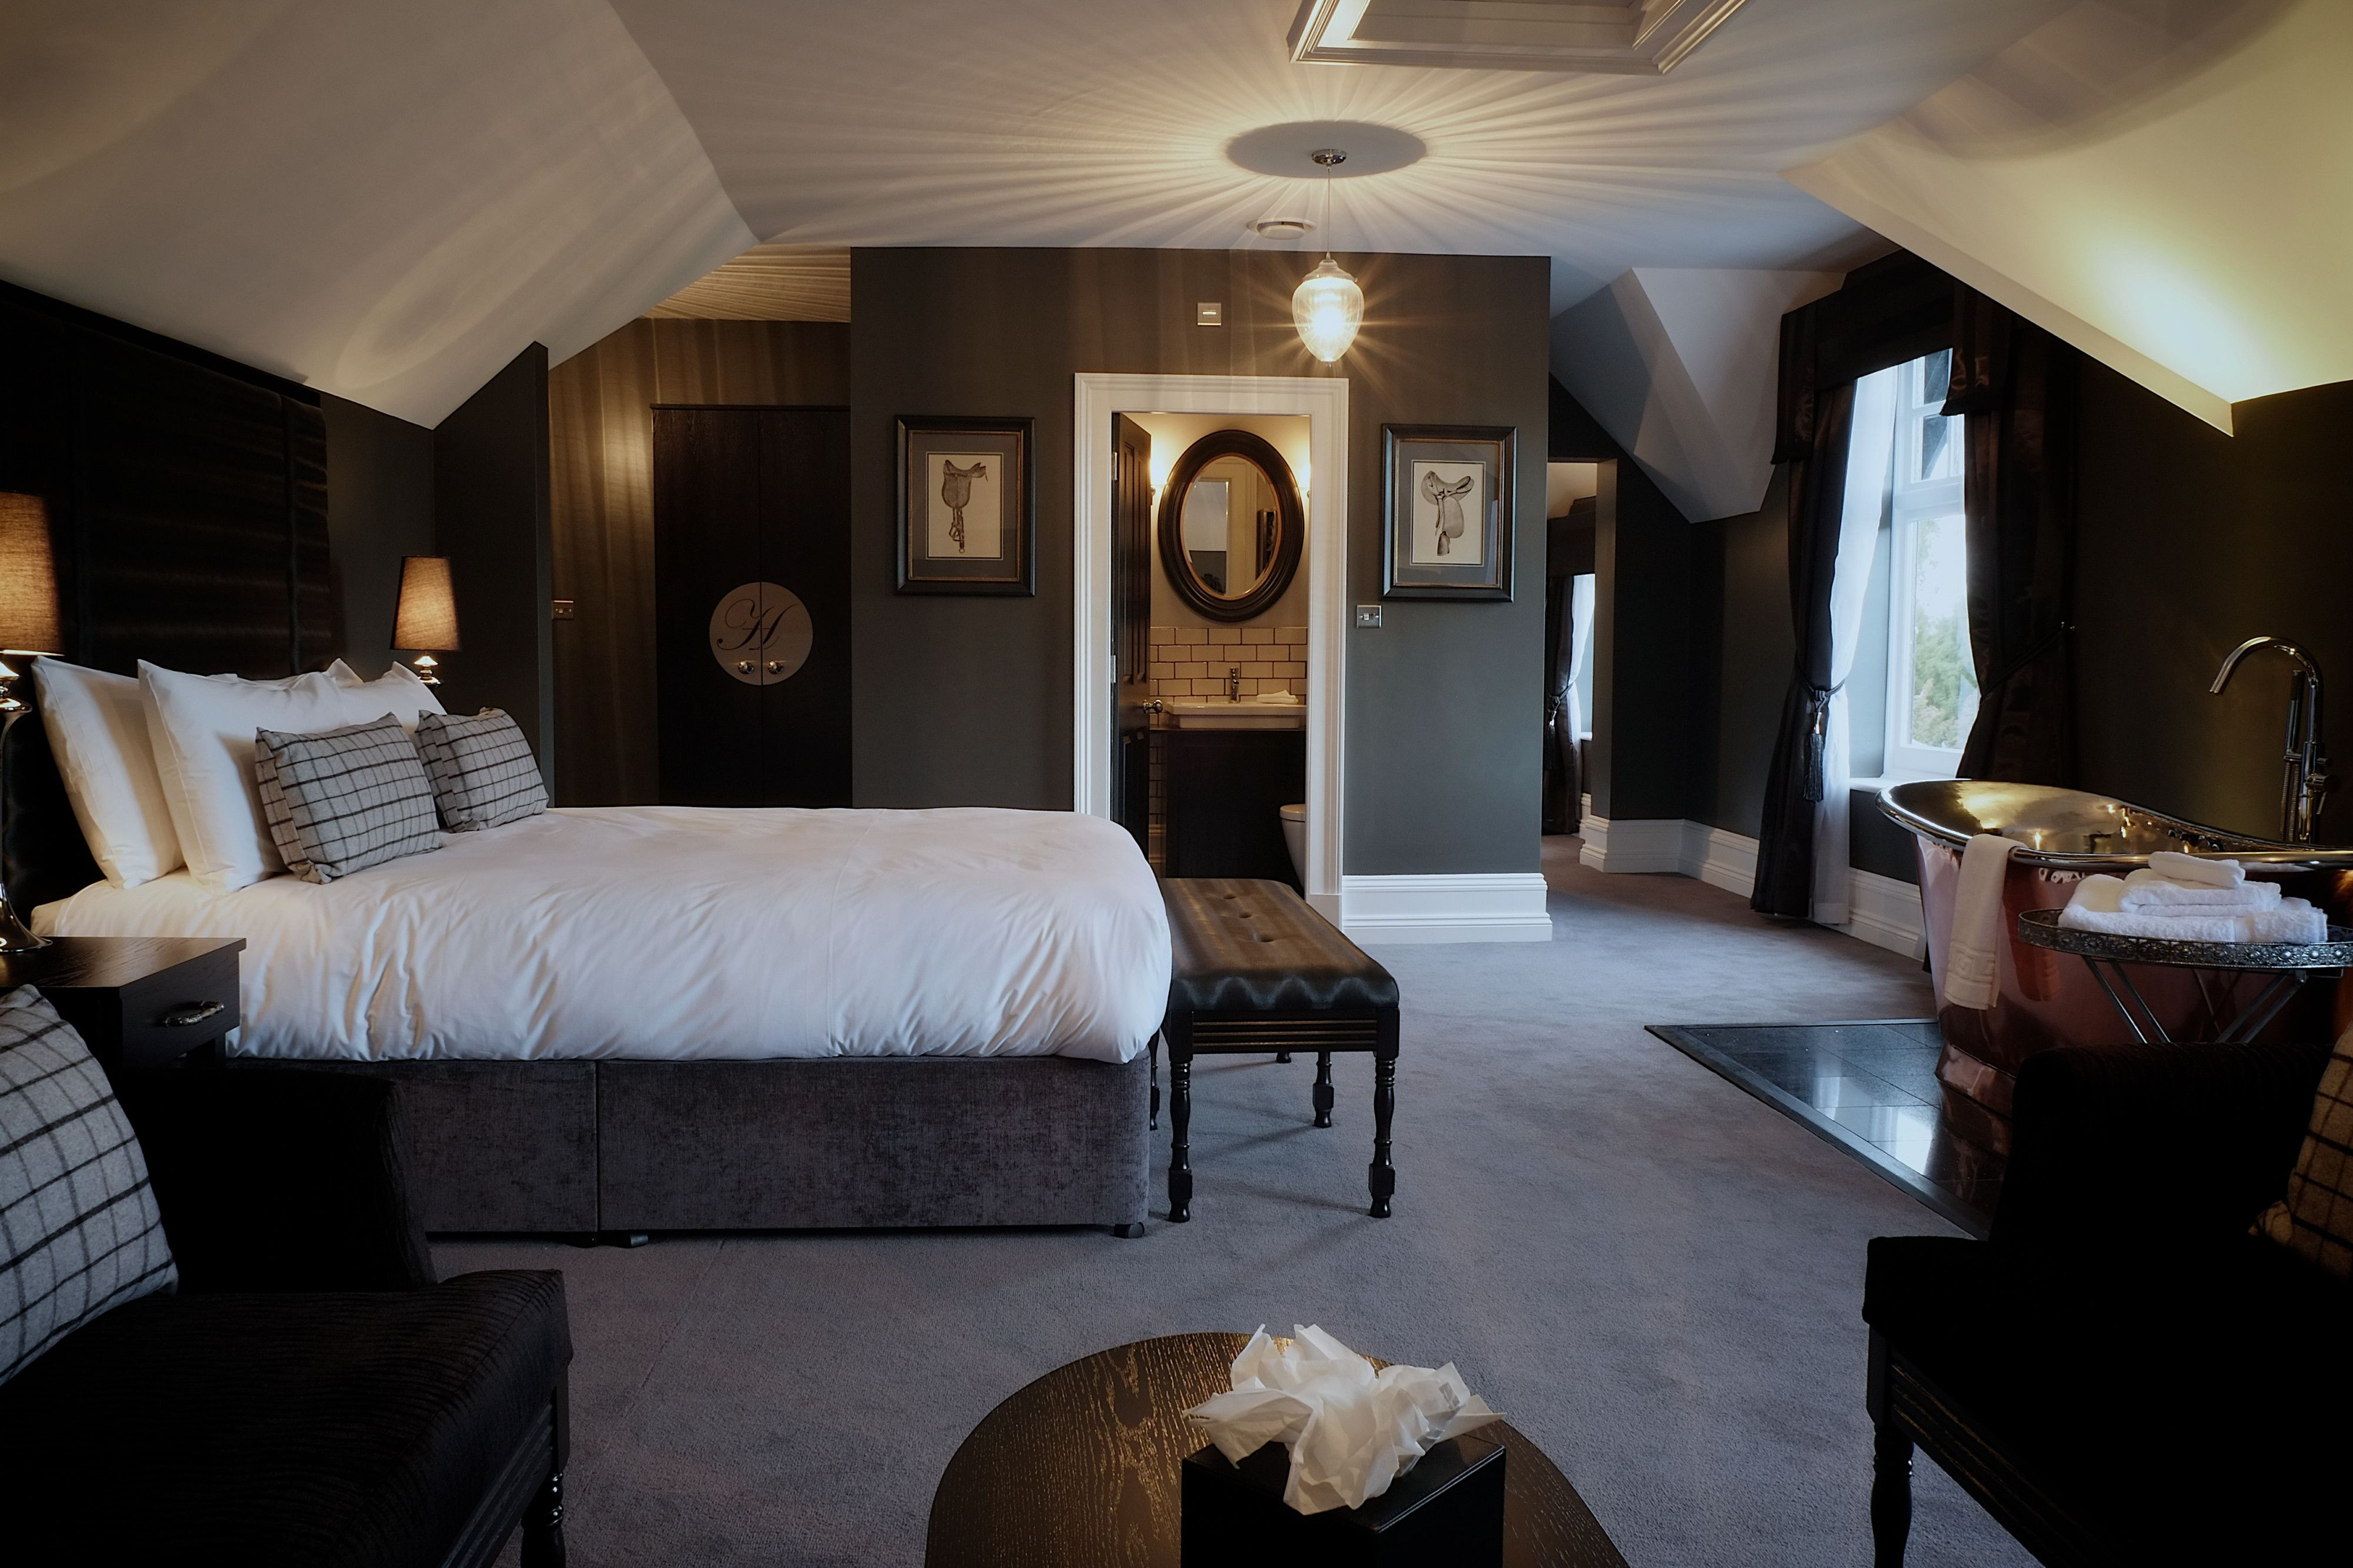 Classic Dark Bedroom With Slanted Ceilings Not Crazy About The